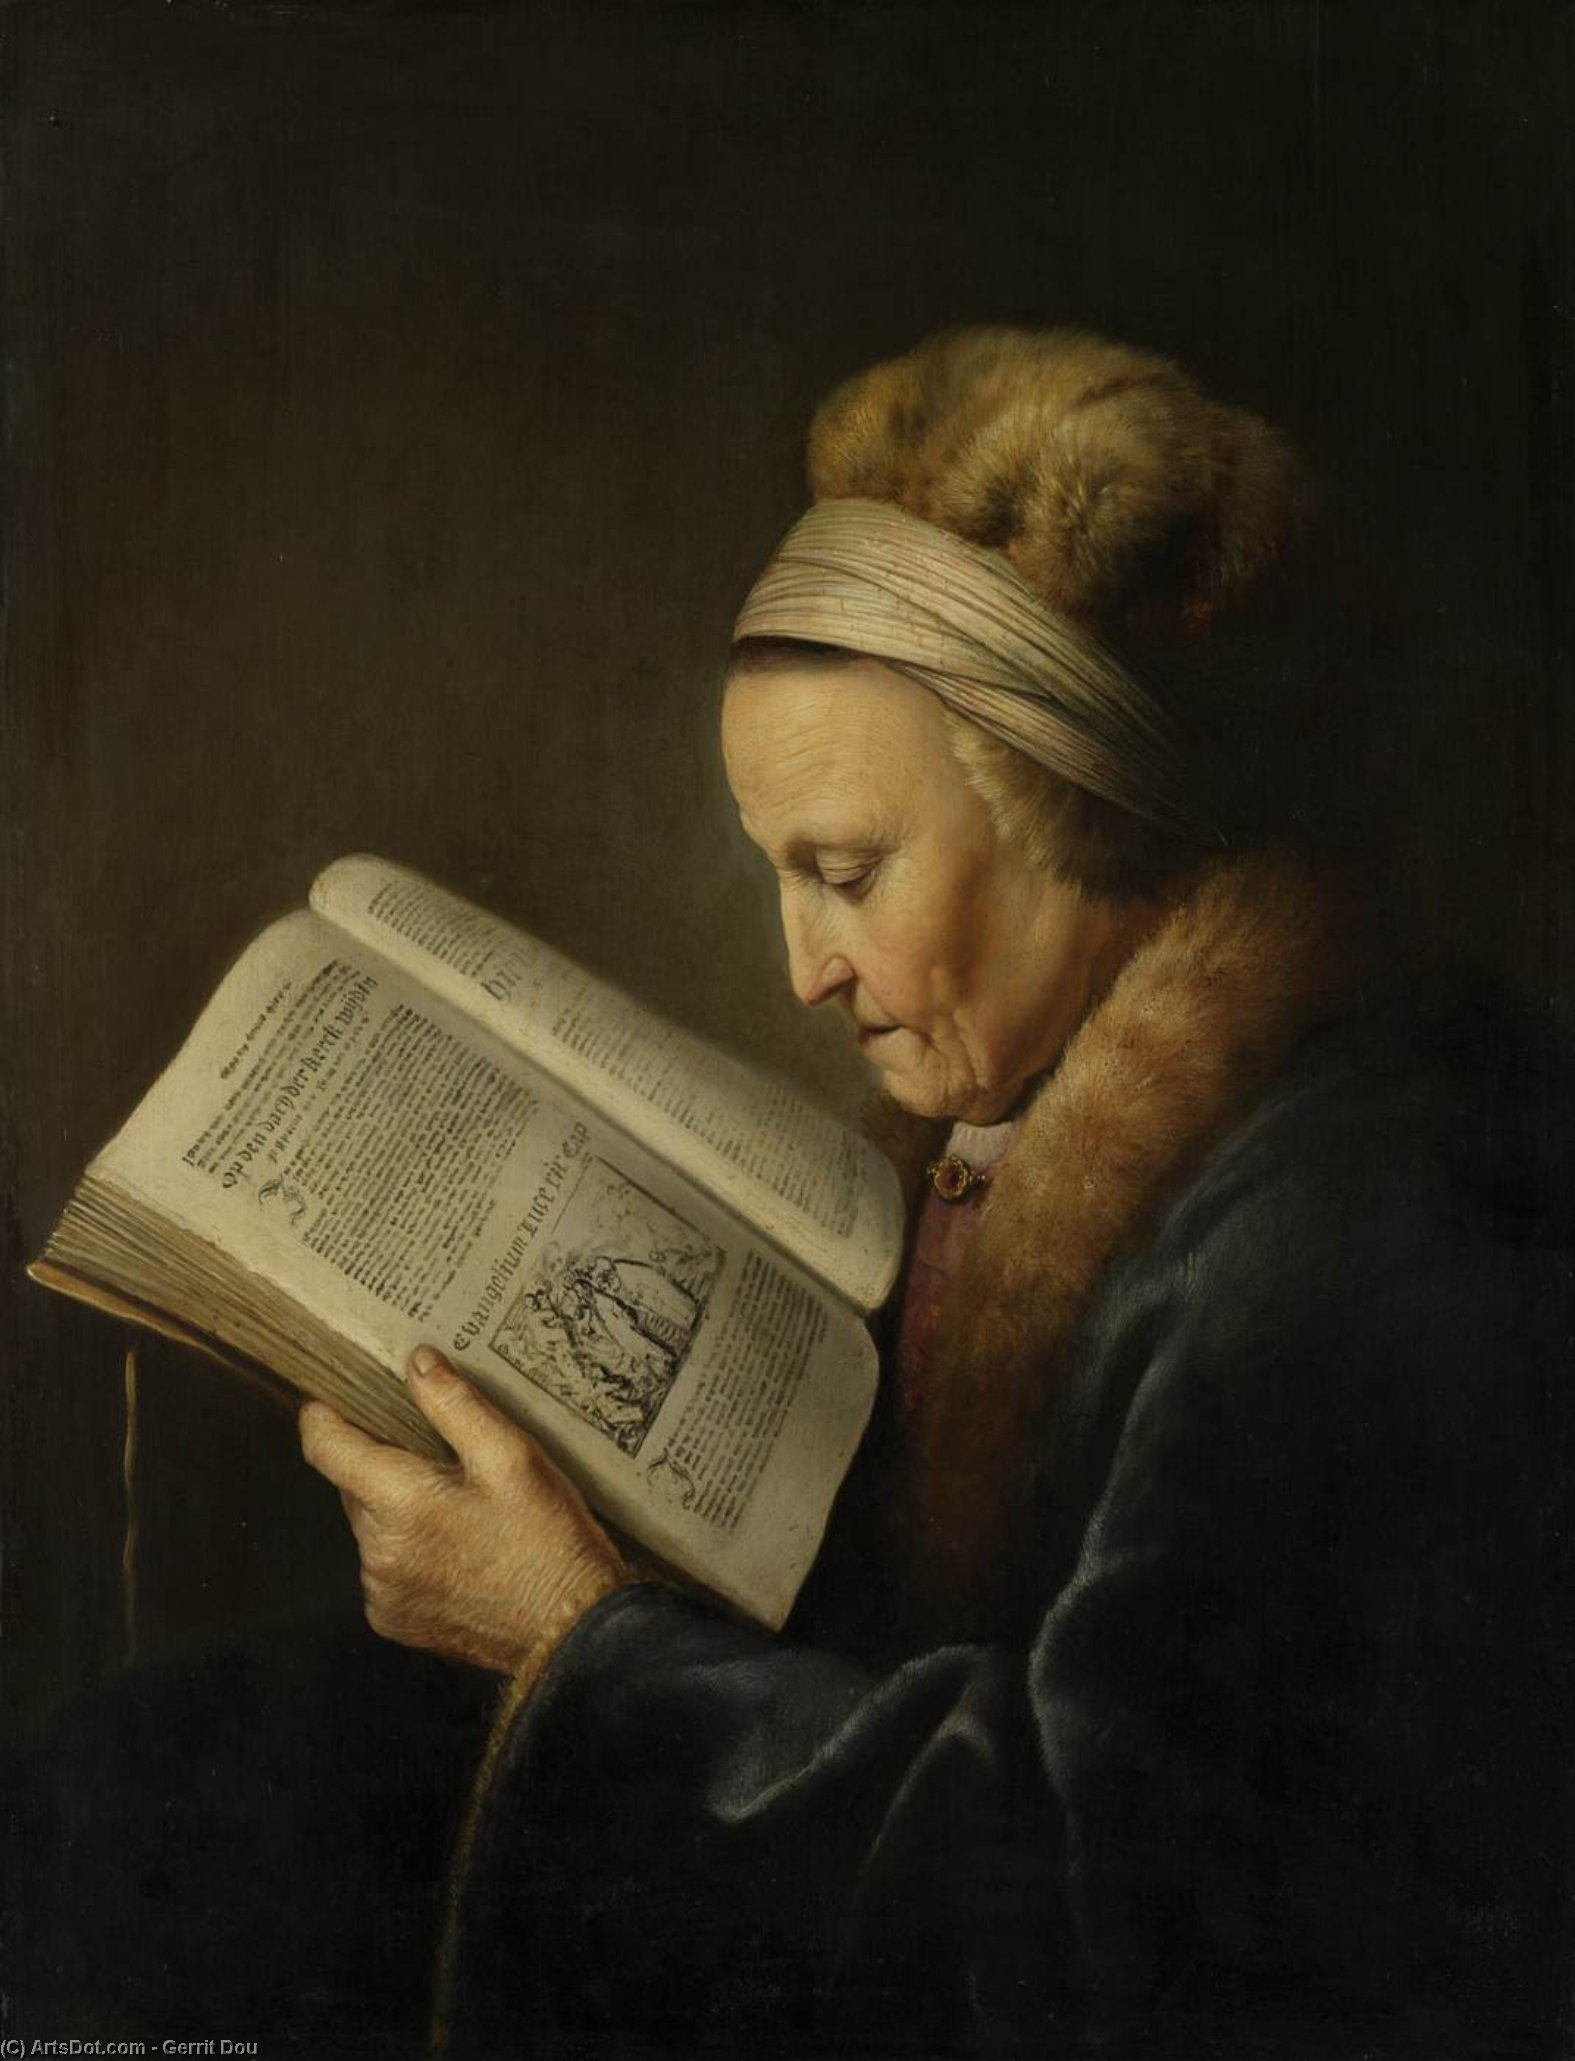 Old Woman Reading a Bible, Oil by Gerrit (Gérard) Dou (1613-1675, Netherlands)